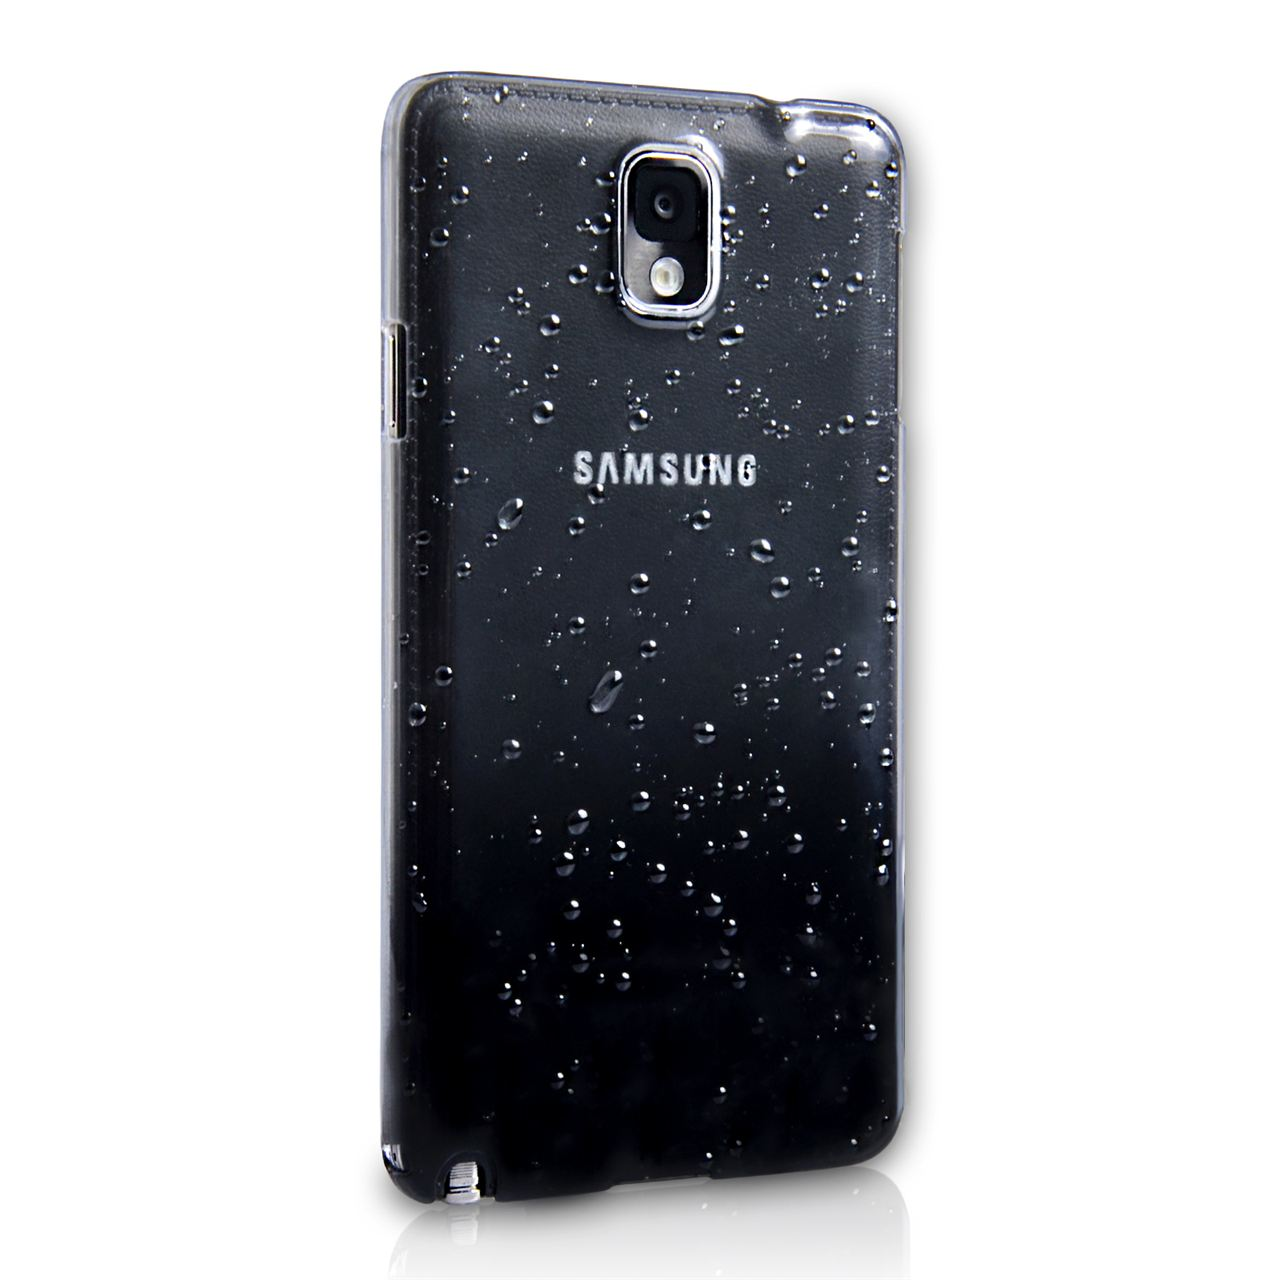 YouSave Accessories Samsung Galaxy Note 3 Waterdrop Hard Case - Black